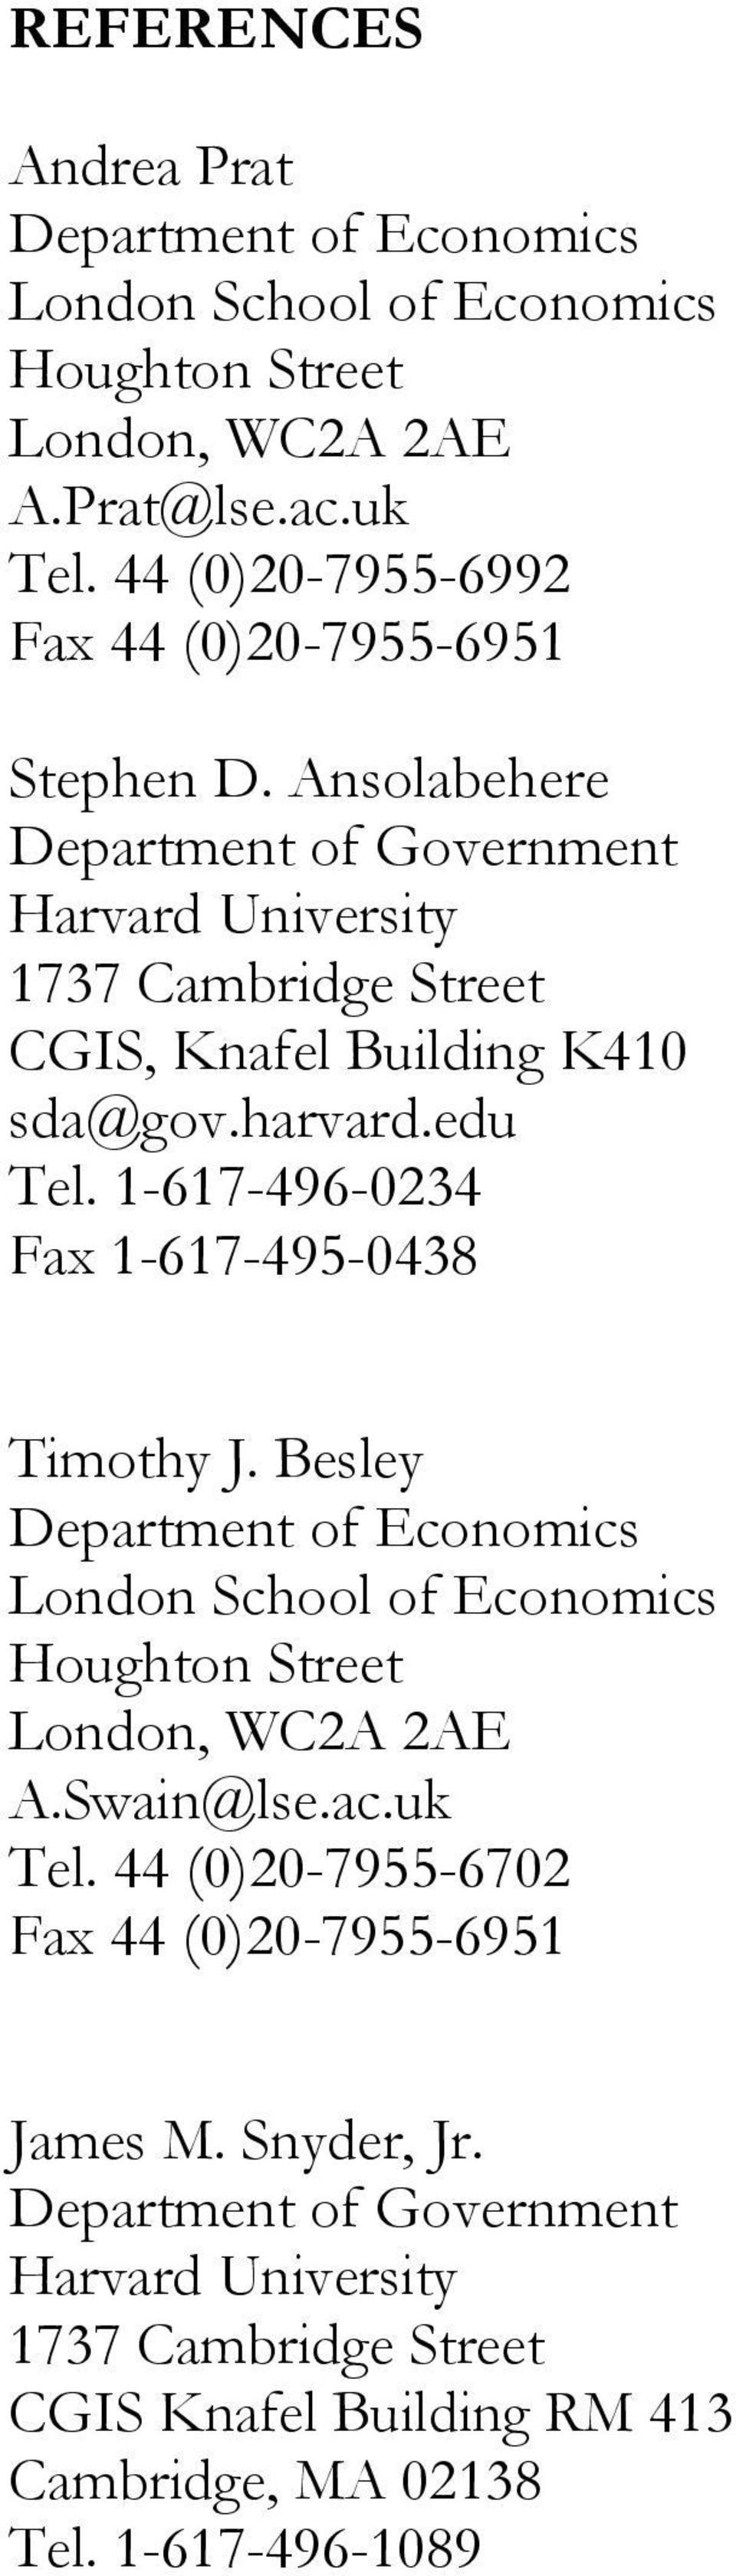 harvard.edu Tel. 1-617-496-0234 Fax 1-617-495-0438 Timothy J. Besley Department of Economics London School of Economics Houghton Street London, WC2A 2AE A.Swain@lse.